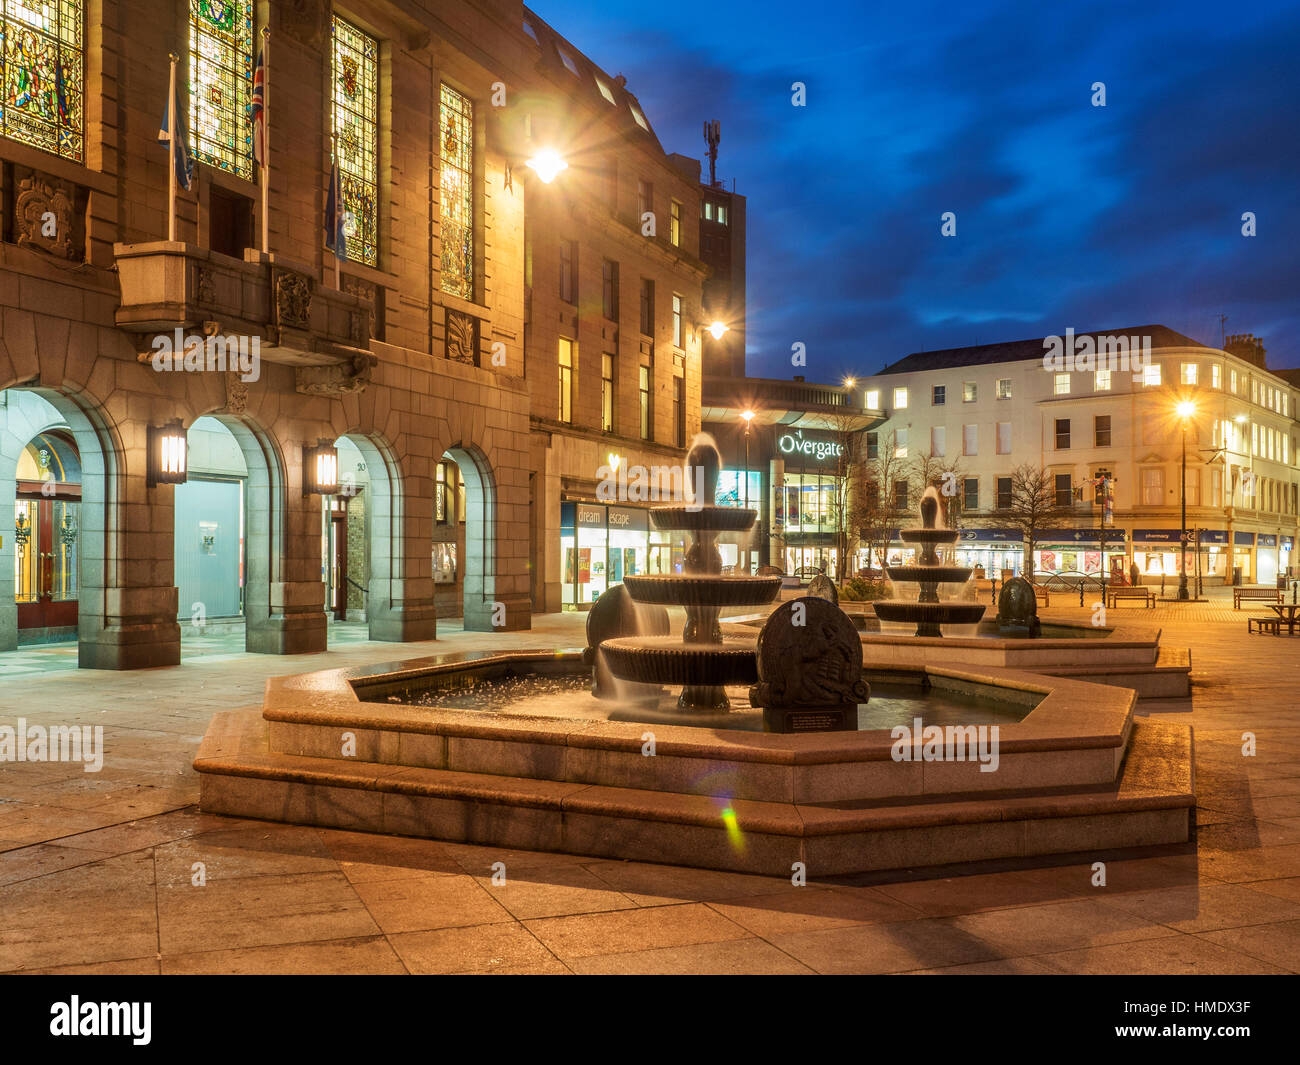 Fountain at City Chambers in City Square at Dusk Dundee Scotland Stock Photo